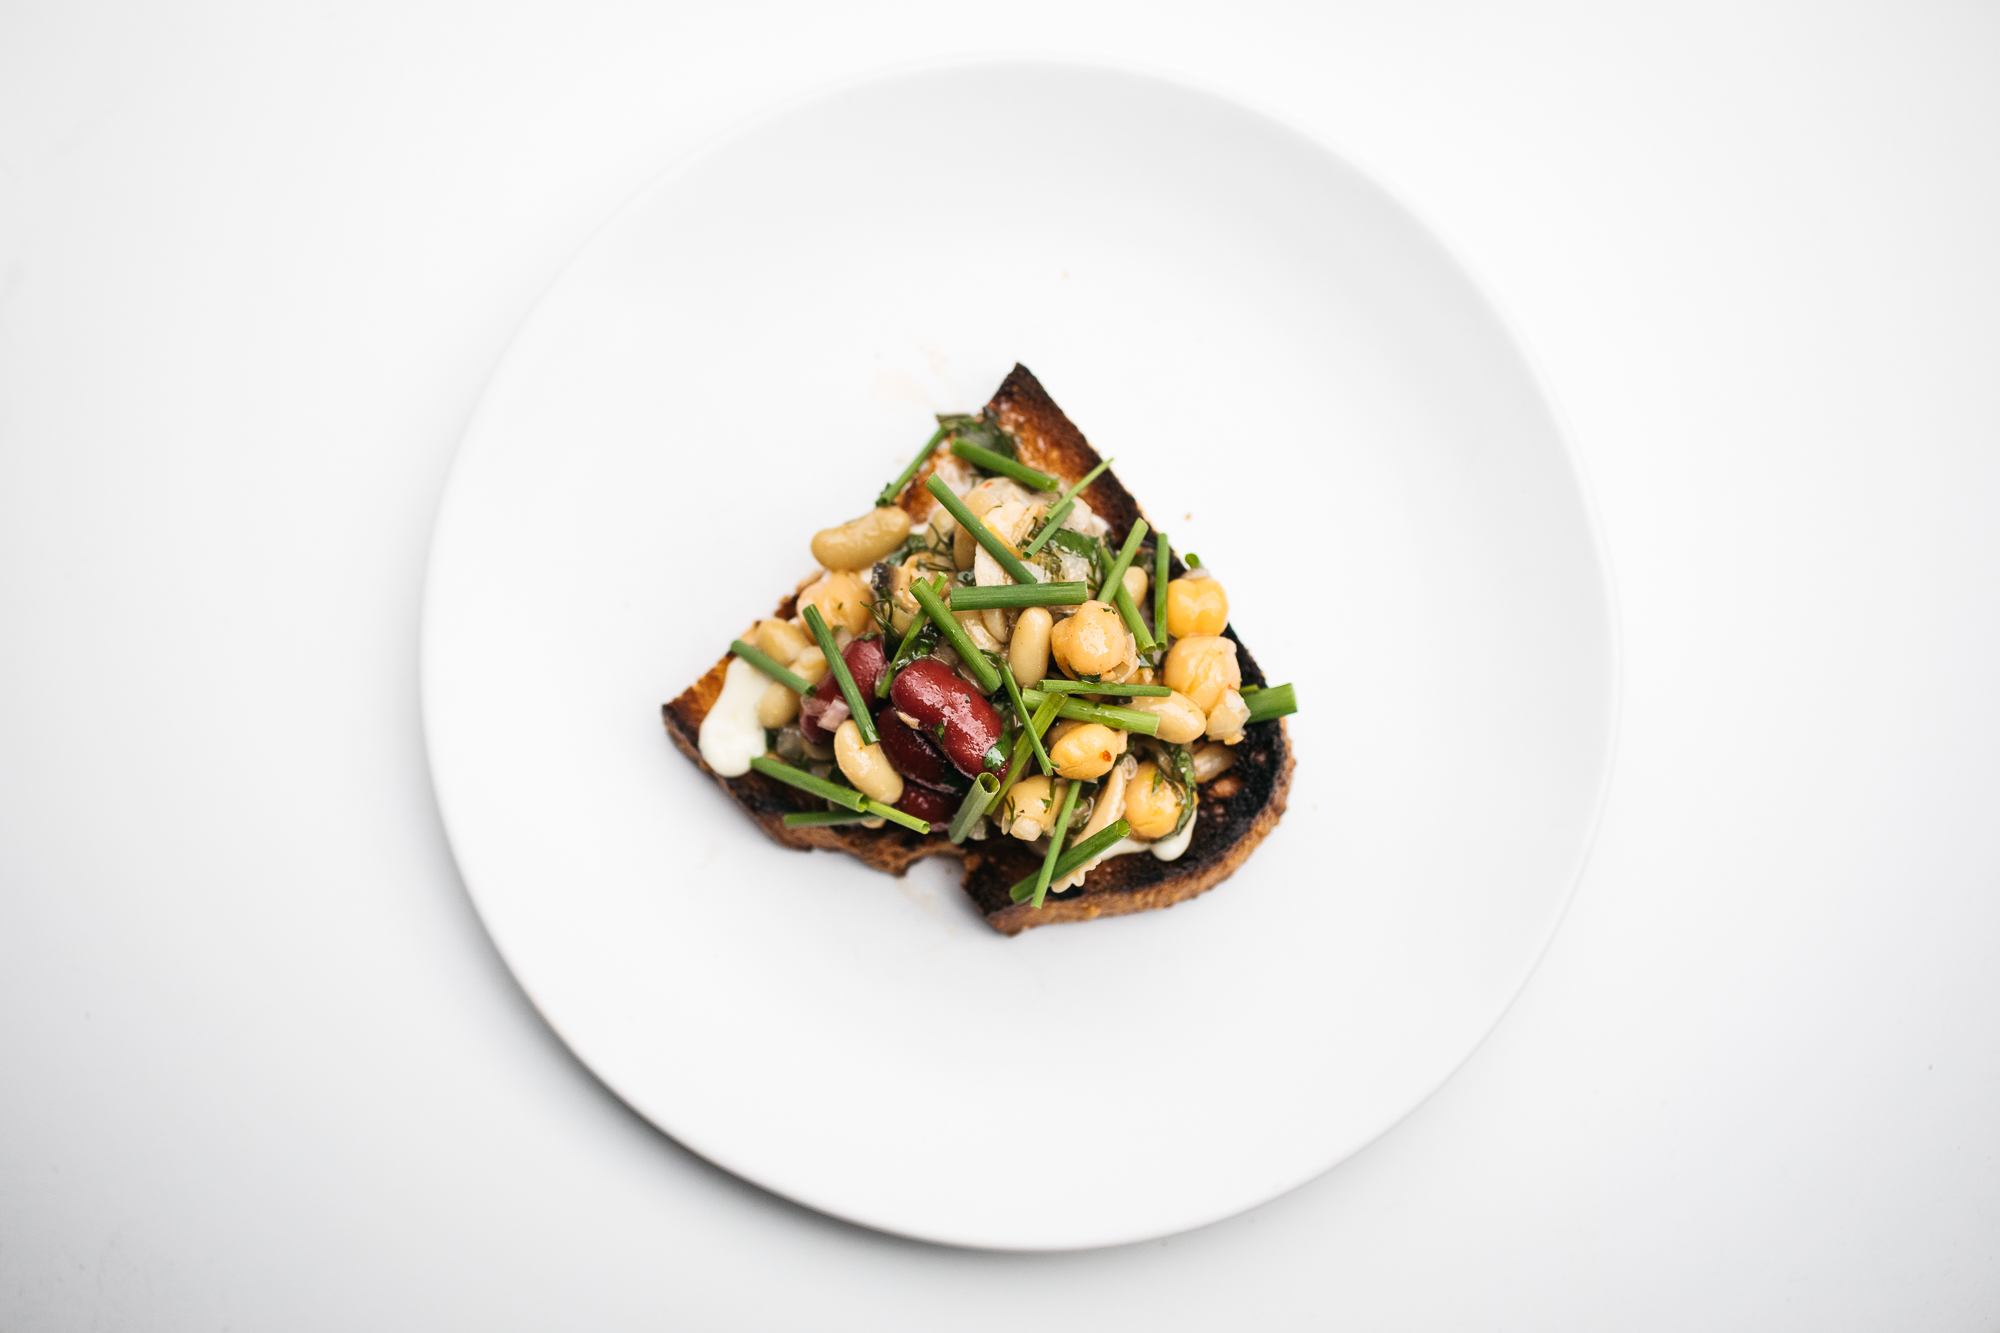 Course 2: Marinated mixed beans salad with middleneck clams, spring herbs, guanicale, and lemon on sourdough toast (Image: Betty Clicker Photography)